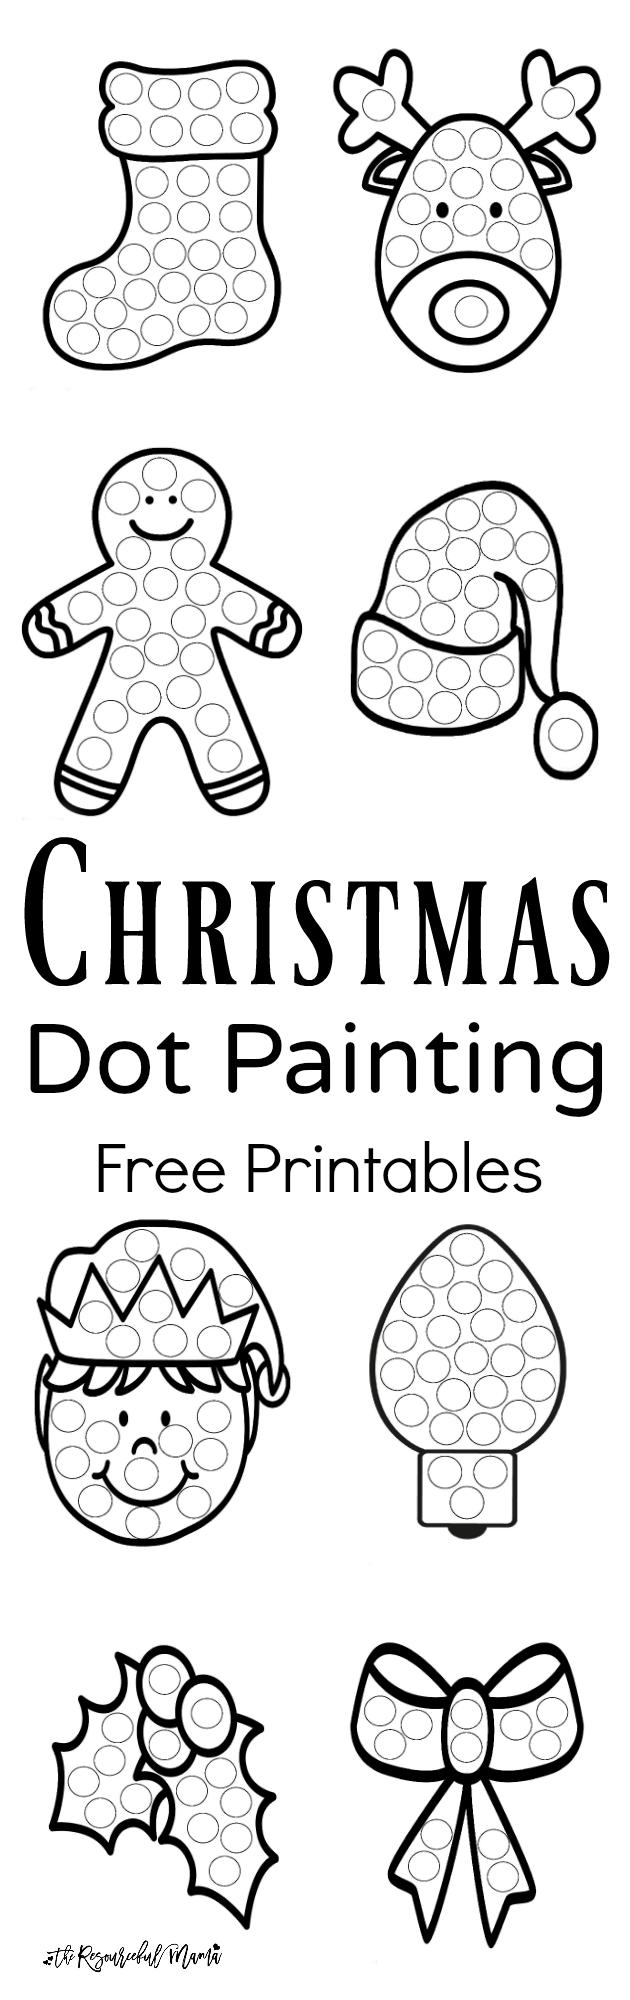 Christmas Dot Painting Free Printables Preschool Christmas Christmas Kindergarten Christmas School